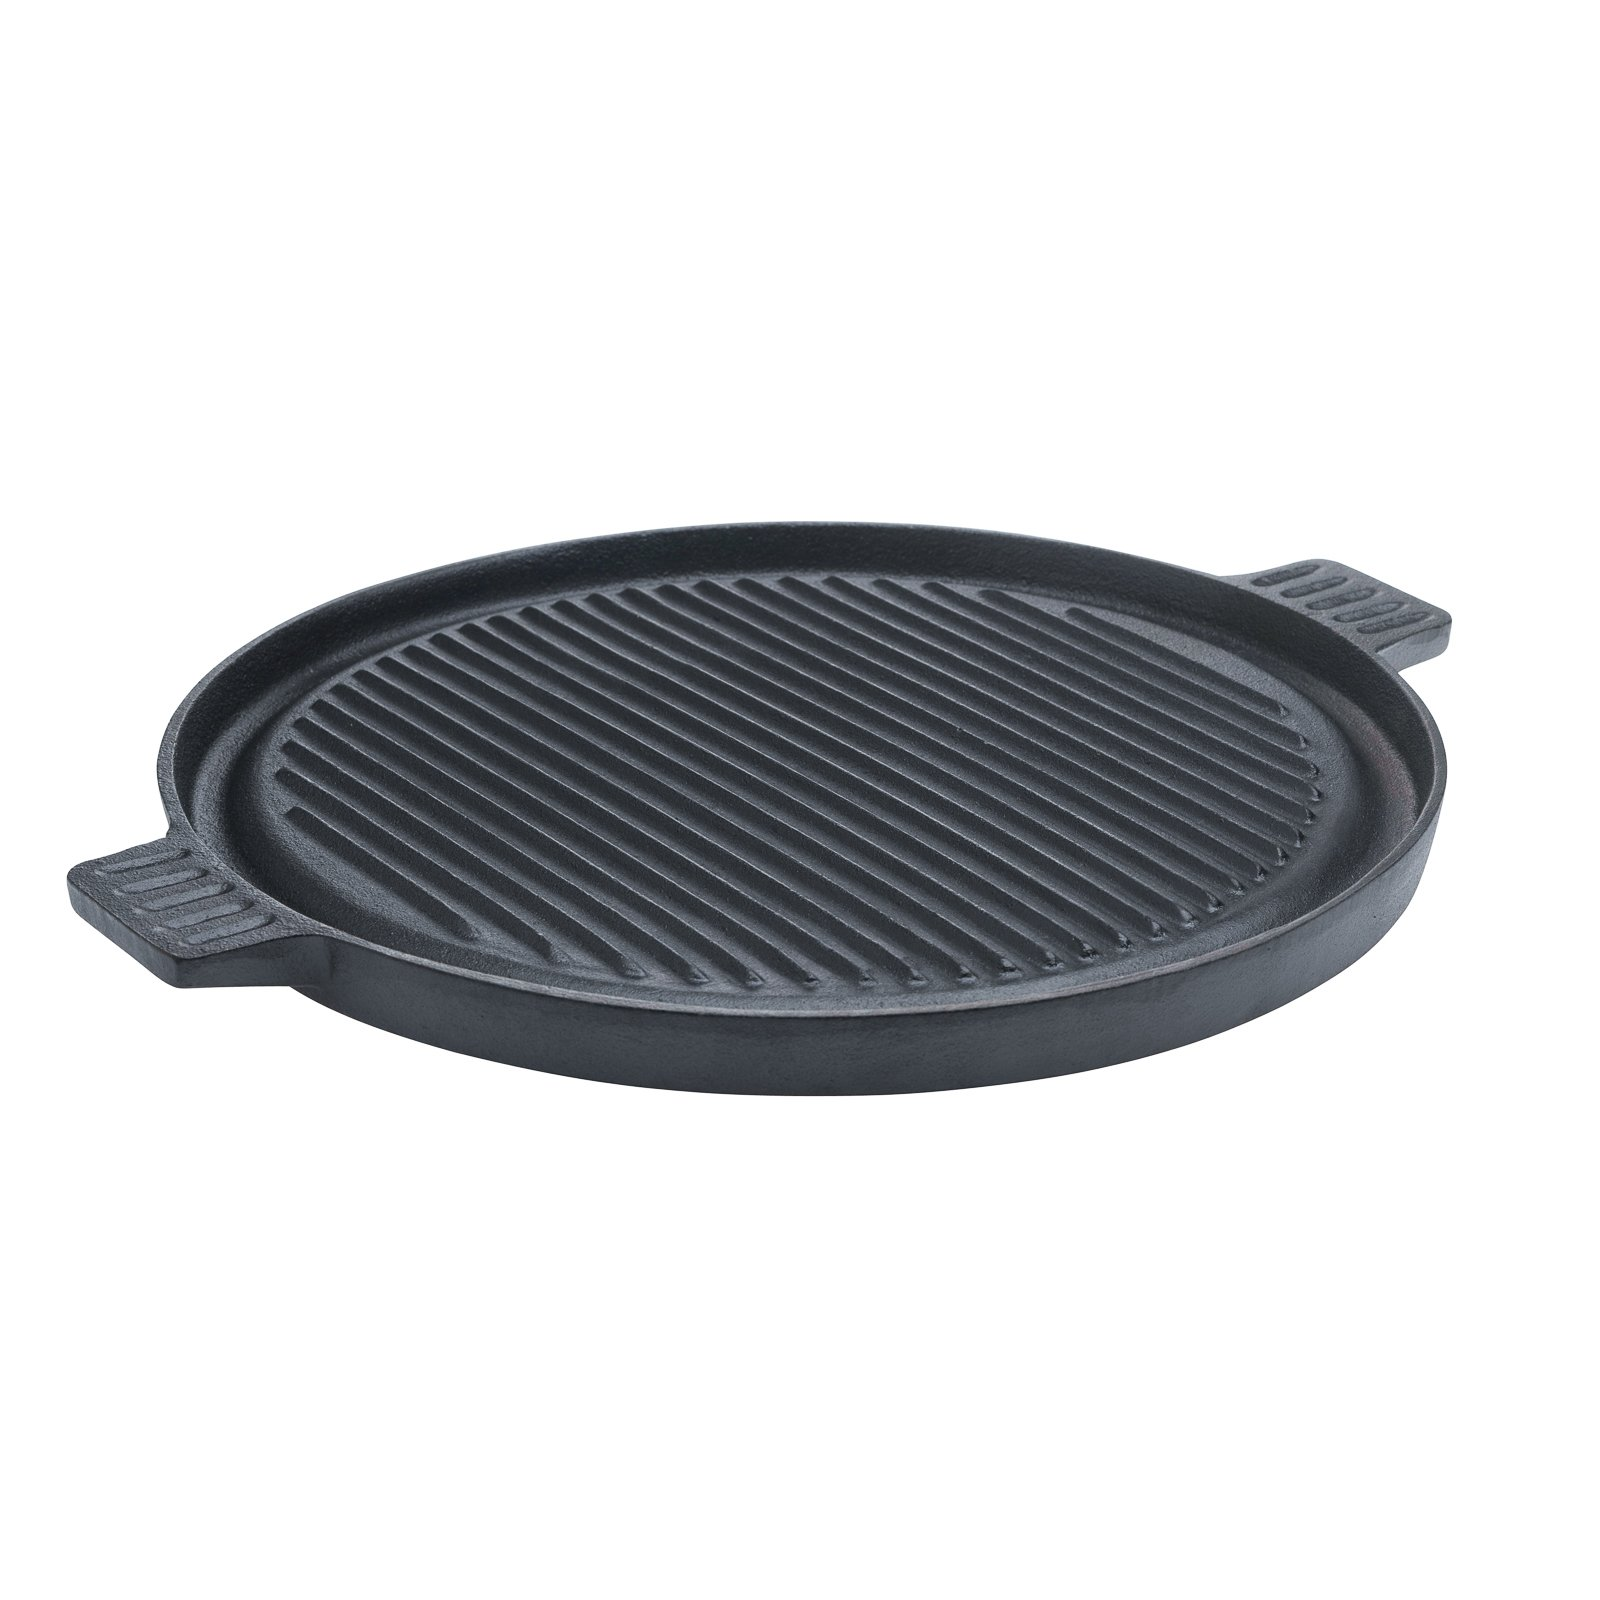 14'' Round Pre Seasoned Reversable Gril/Griddle With 2 Side Handles